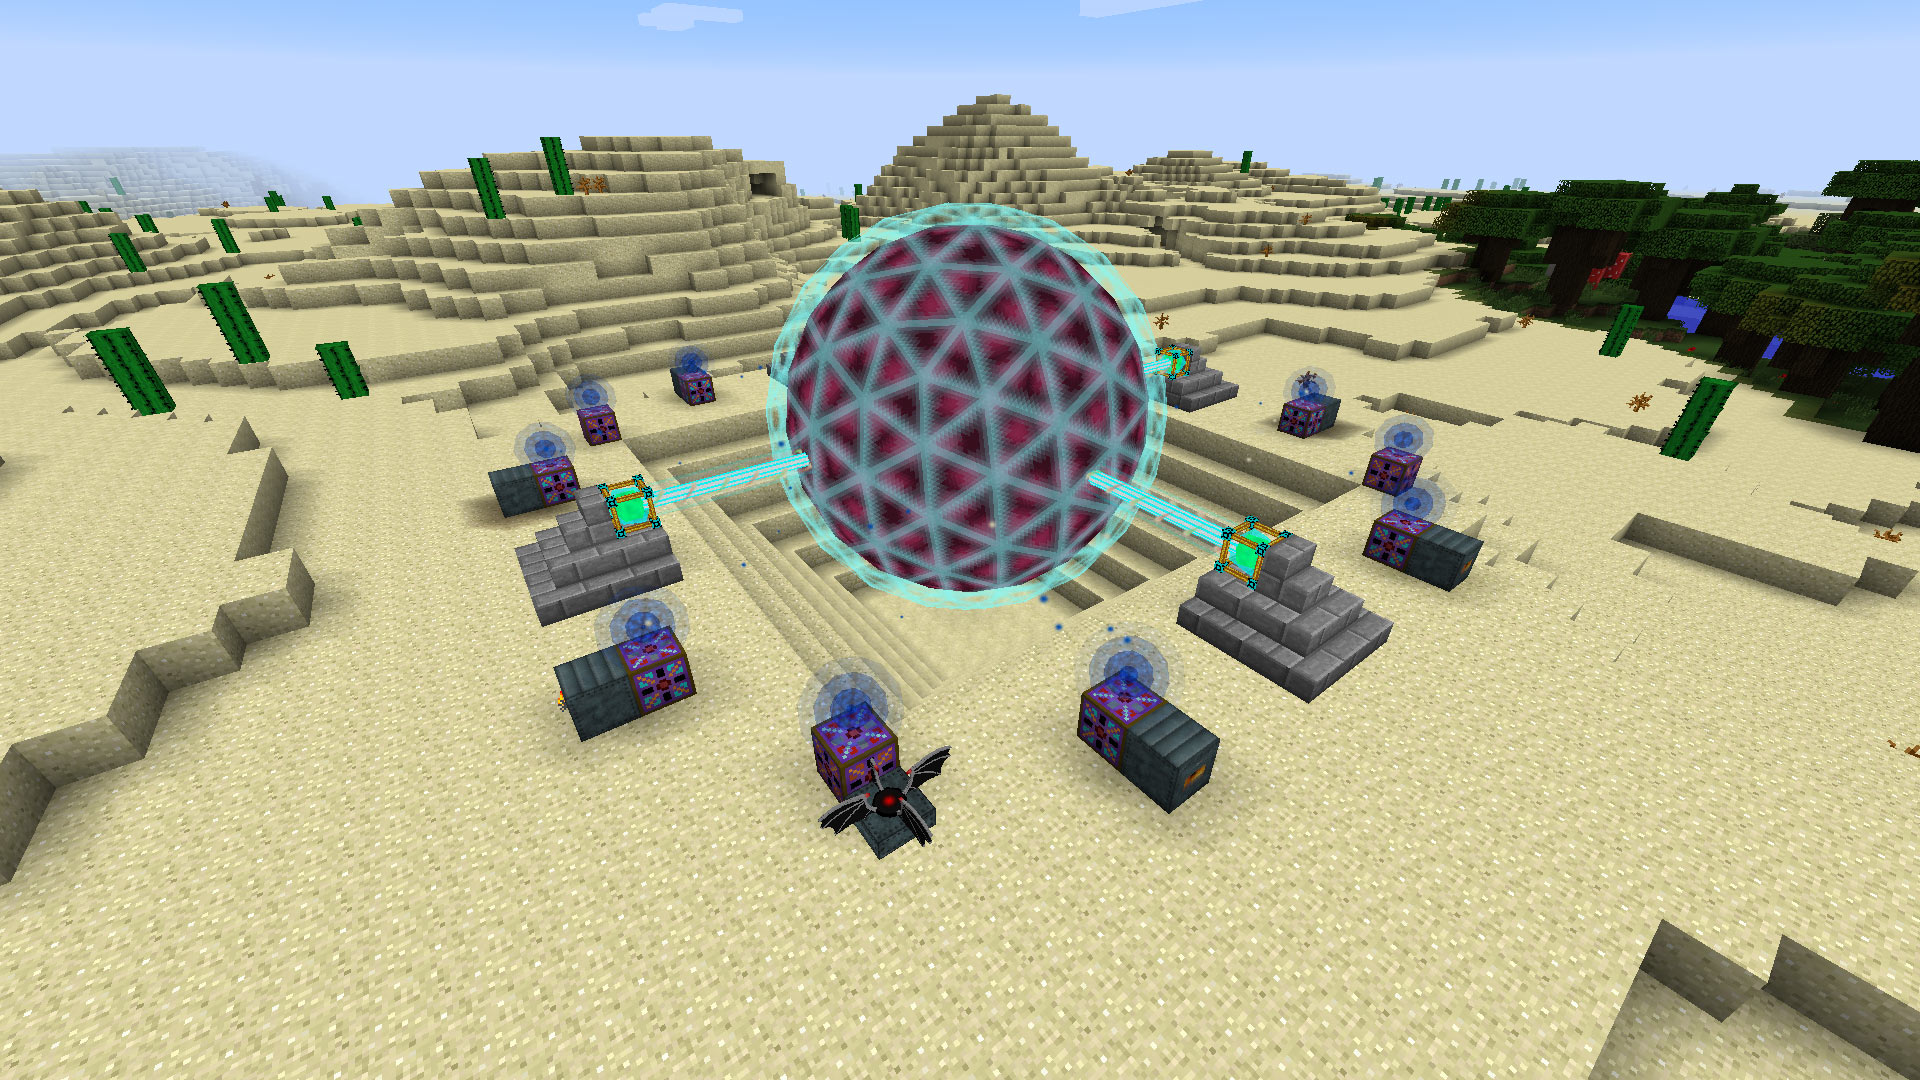 minecraft helicopter mods with Modinfo on Pixelmon Minecraft App  plaints also L s And Traffic Lights Mod likewise Military Vehicles 2337149 furthermore Ah 64 Apache 1098867 additionally 3013 Sikorsky Uh 60 Black Hawk.